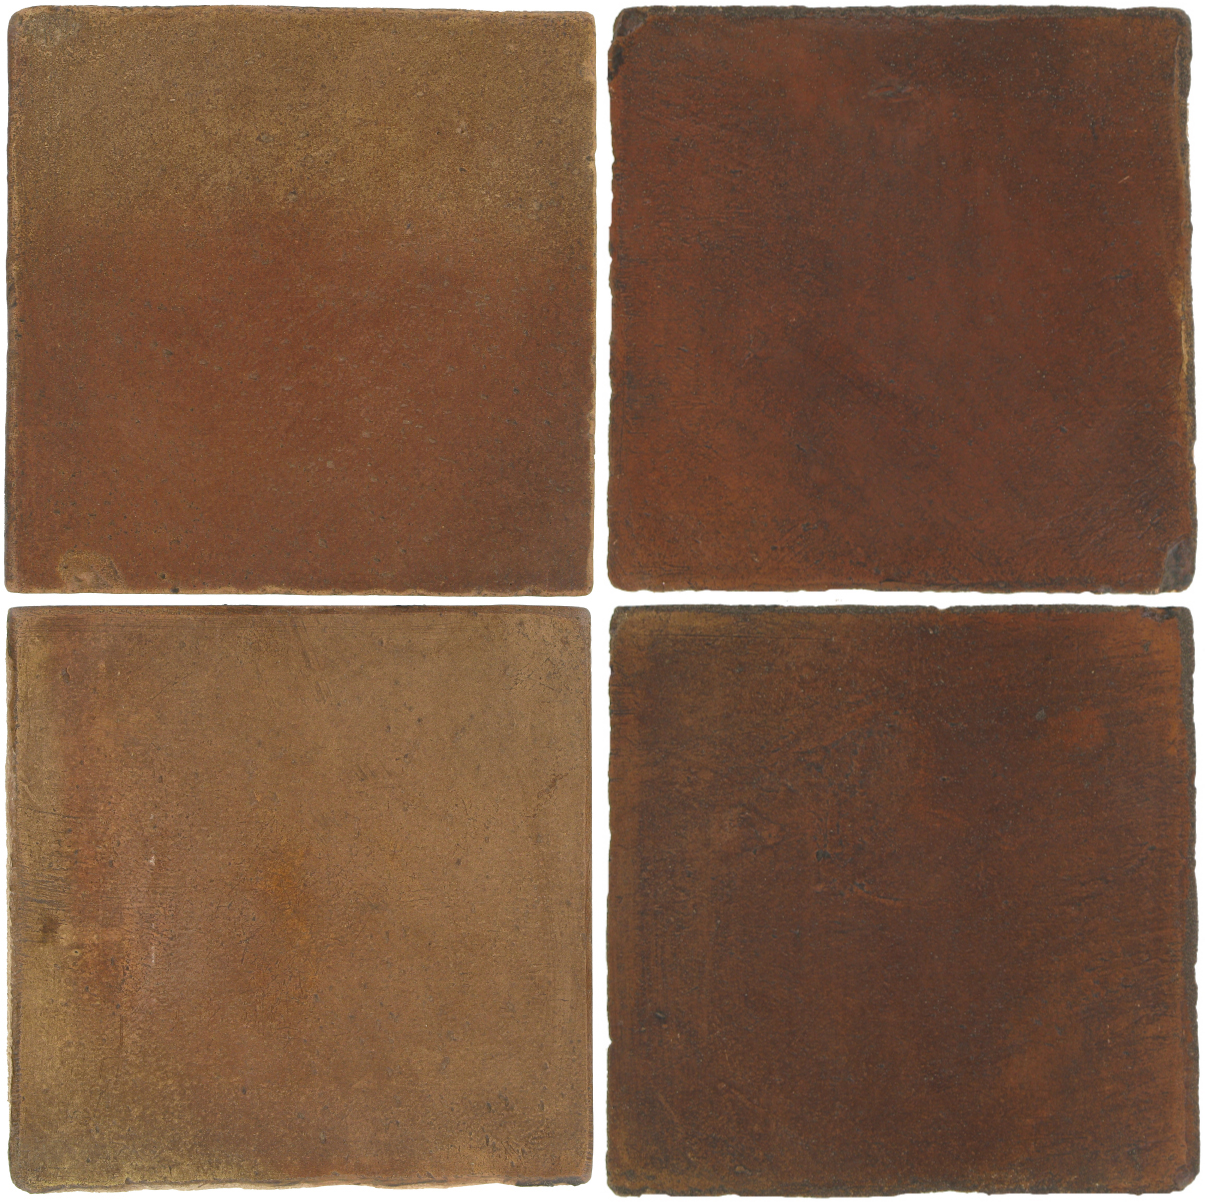 Pedralbes Antique Terracotta  2 Color Combinations  OHS-PSCM Camel Brown + OHS-PSOW Old World